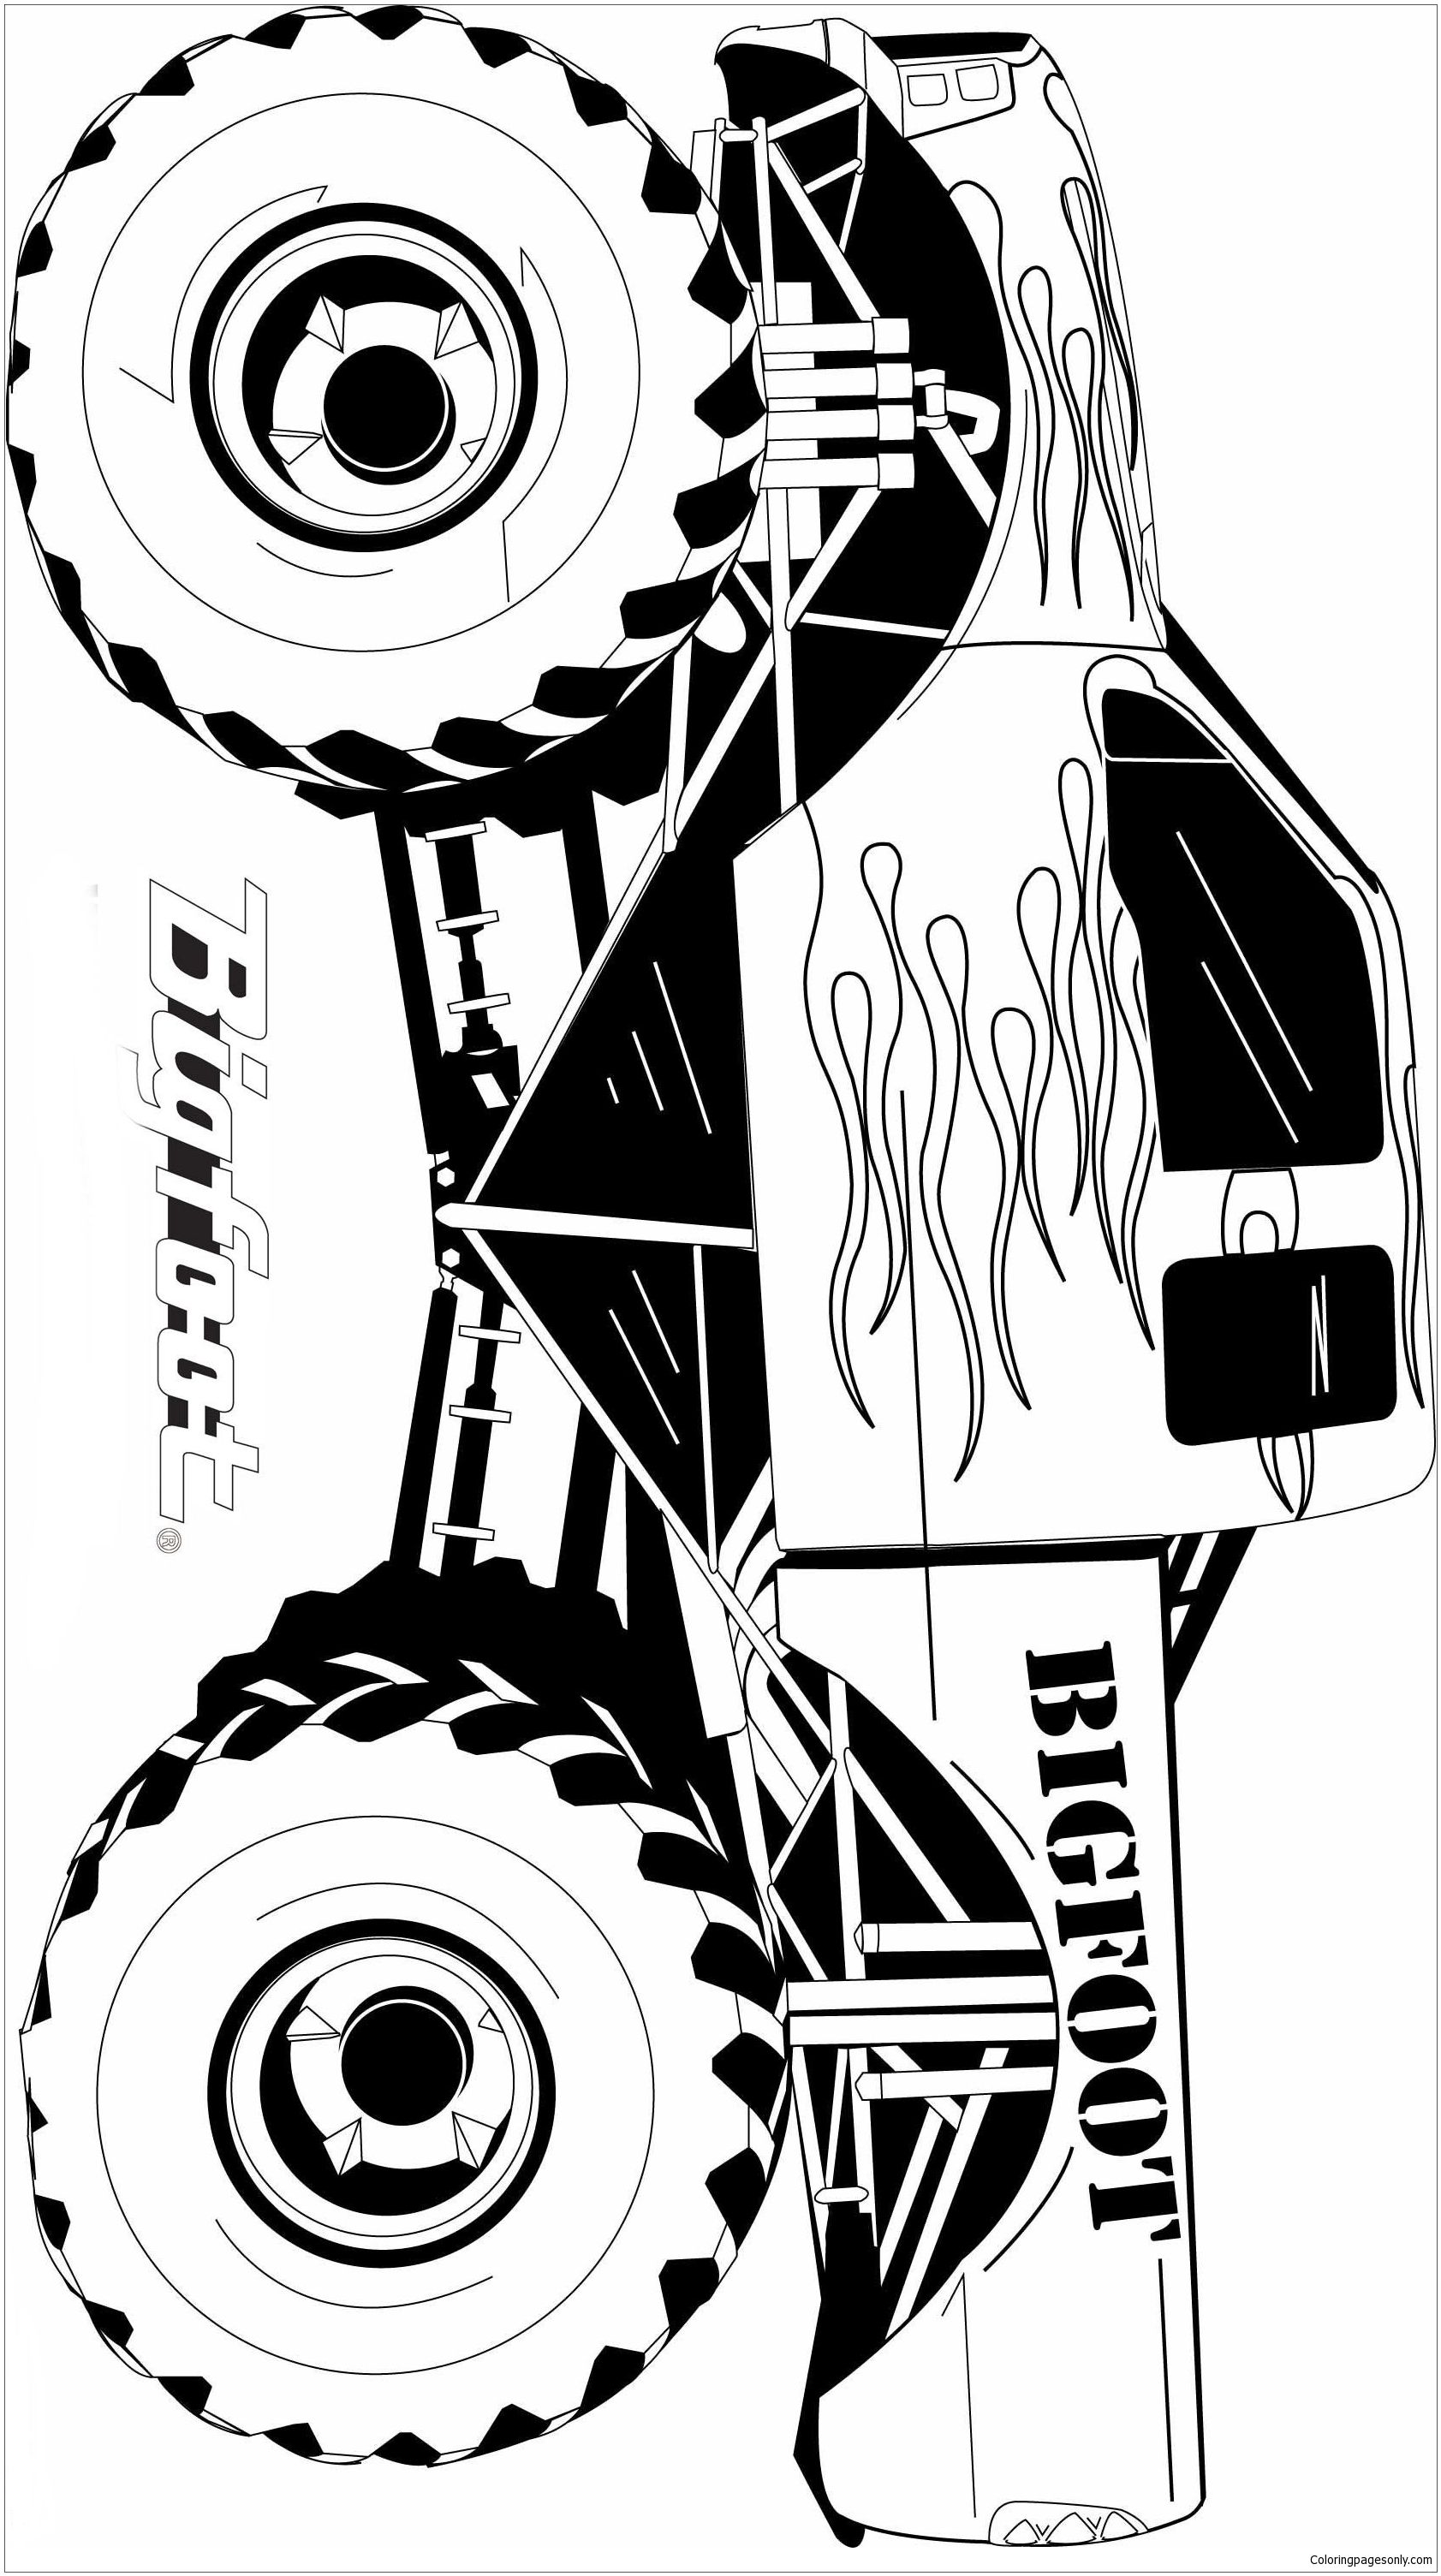 Famous Monster Truck Bigfoot Coloring Page: Here is a coloring image ...